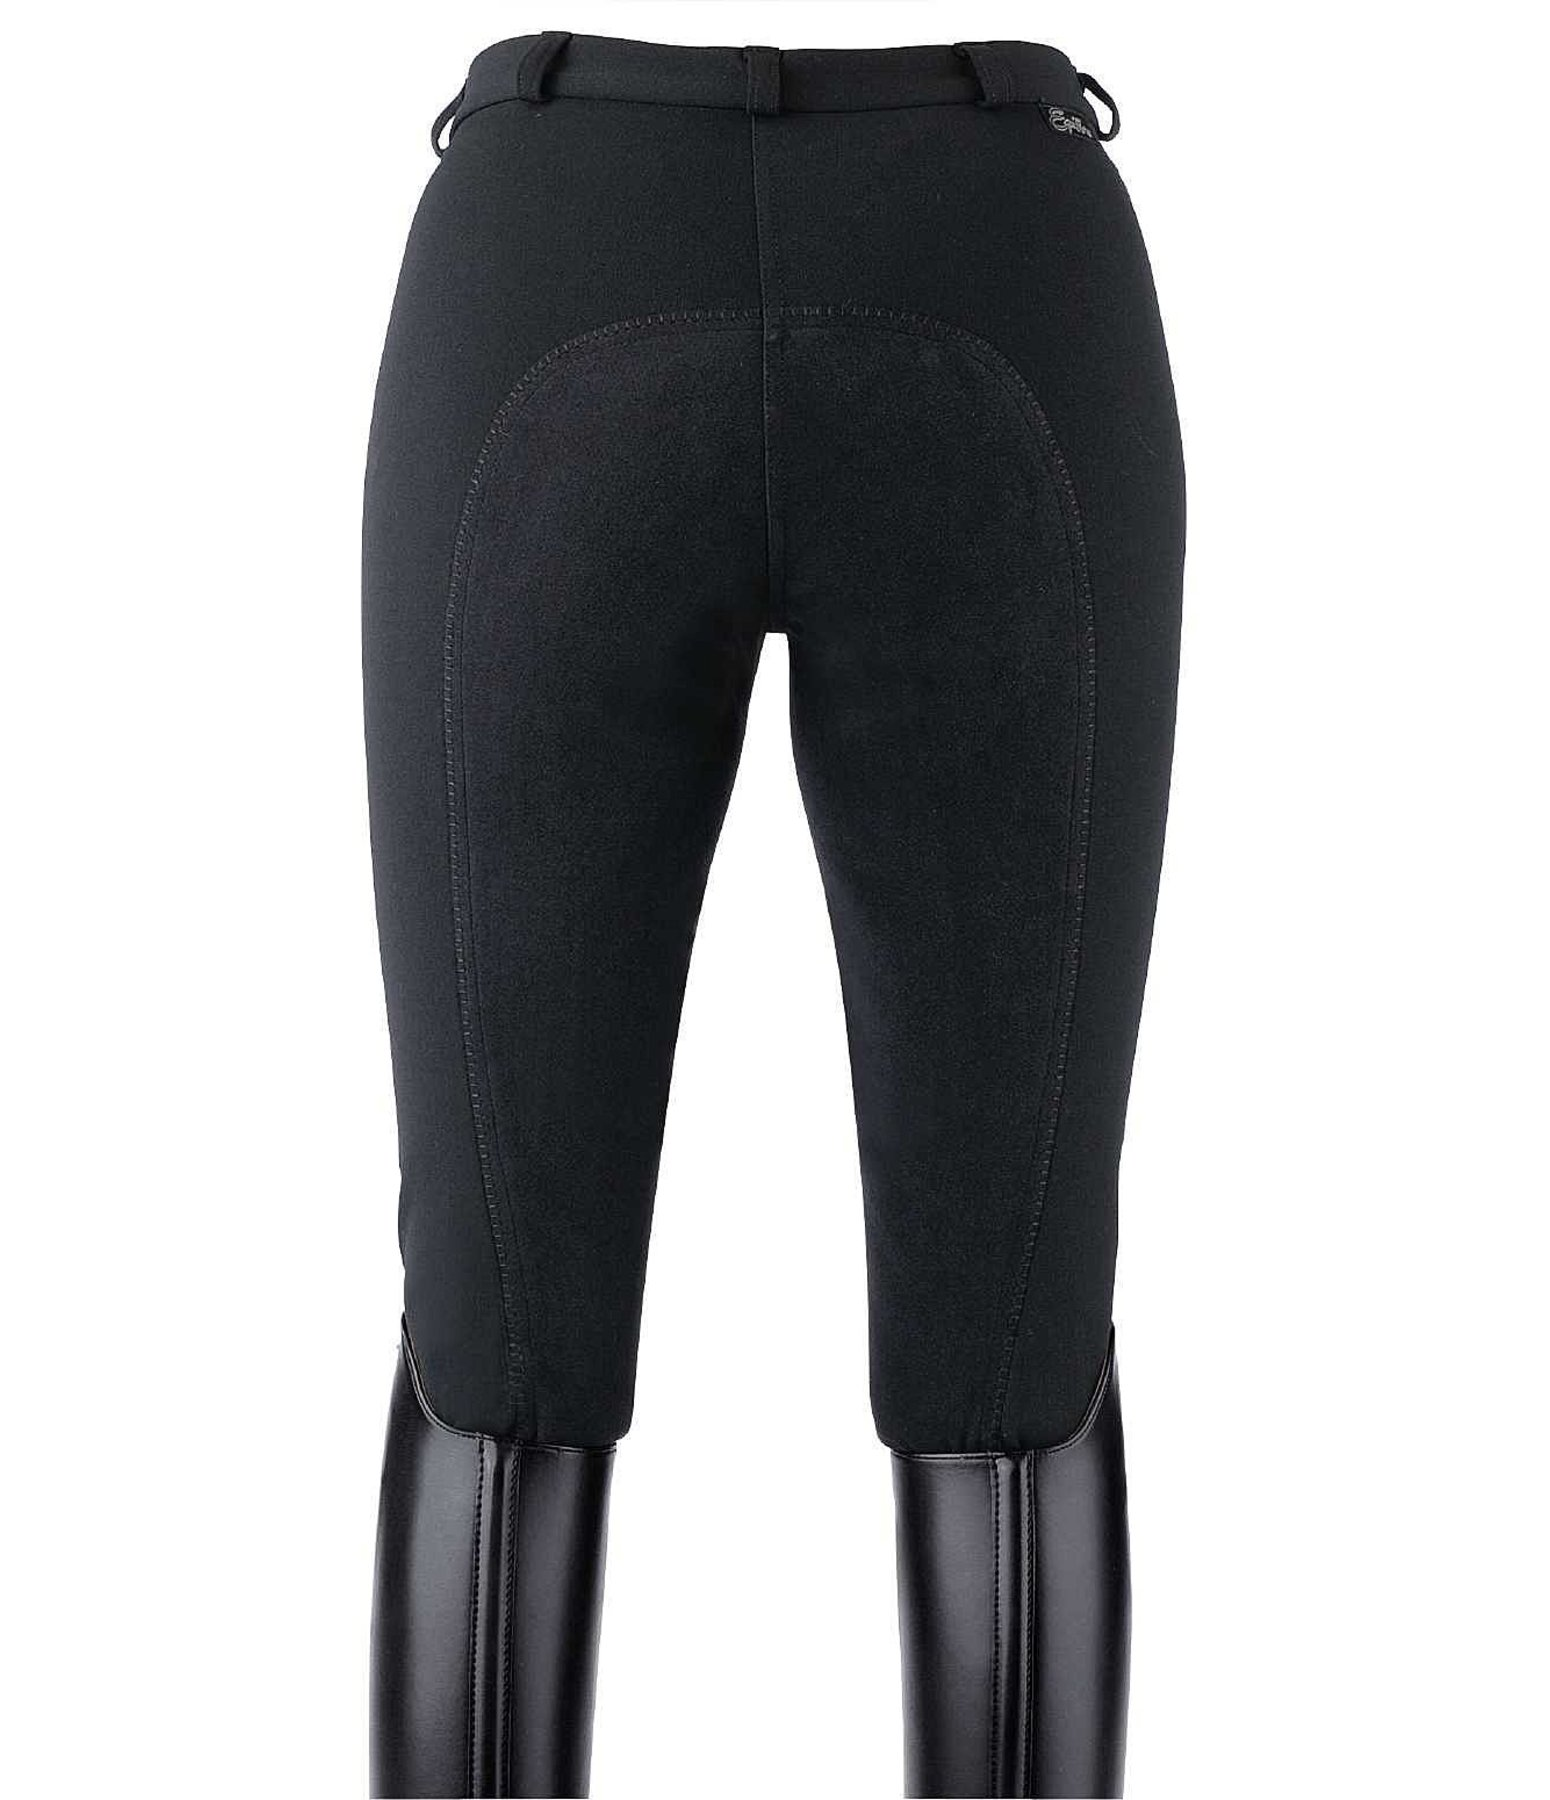 Damen-Vollbesatzreithose Super-Stretch